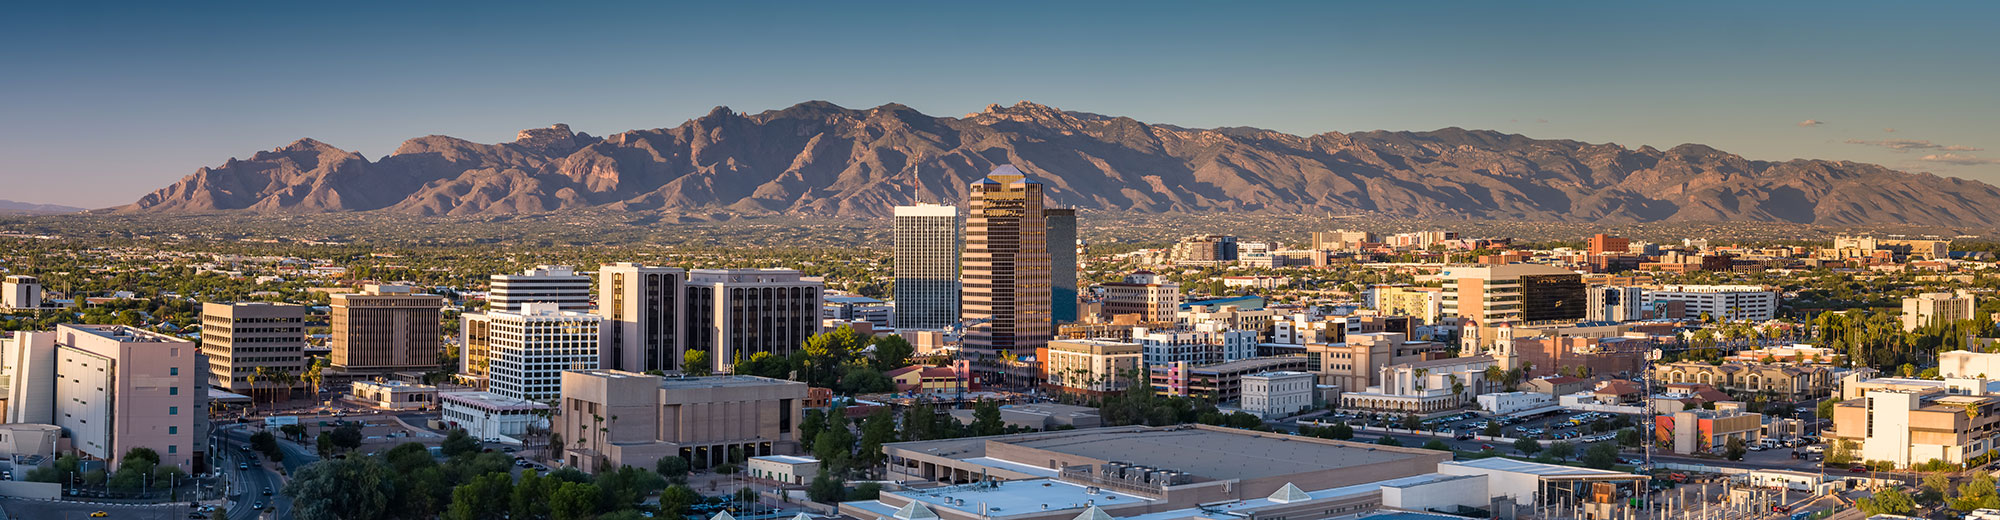 Skyline of Tucson, Arizona with downtown and mountains in background